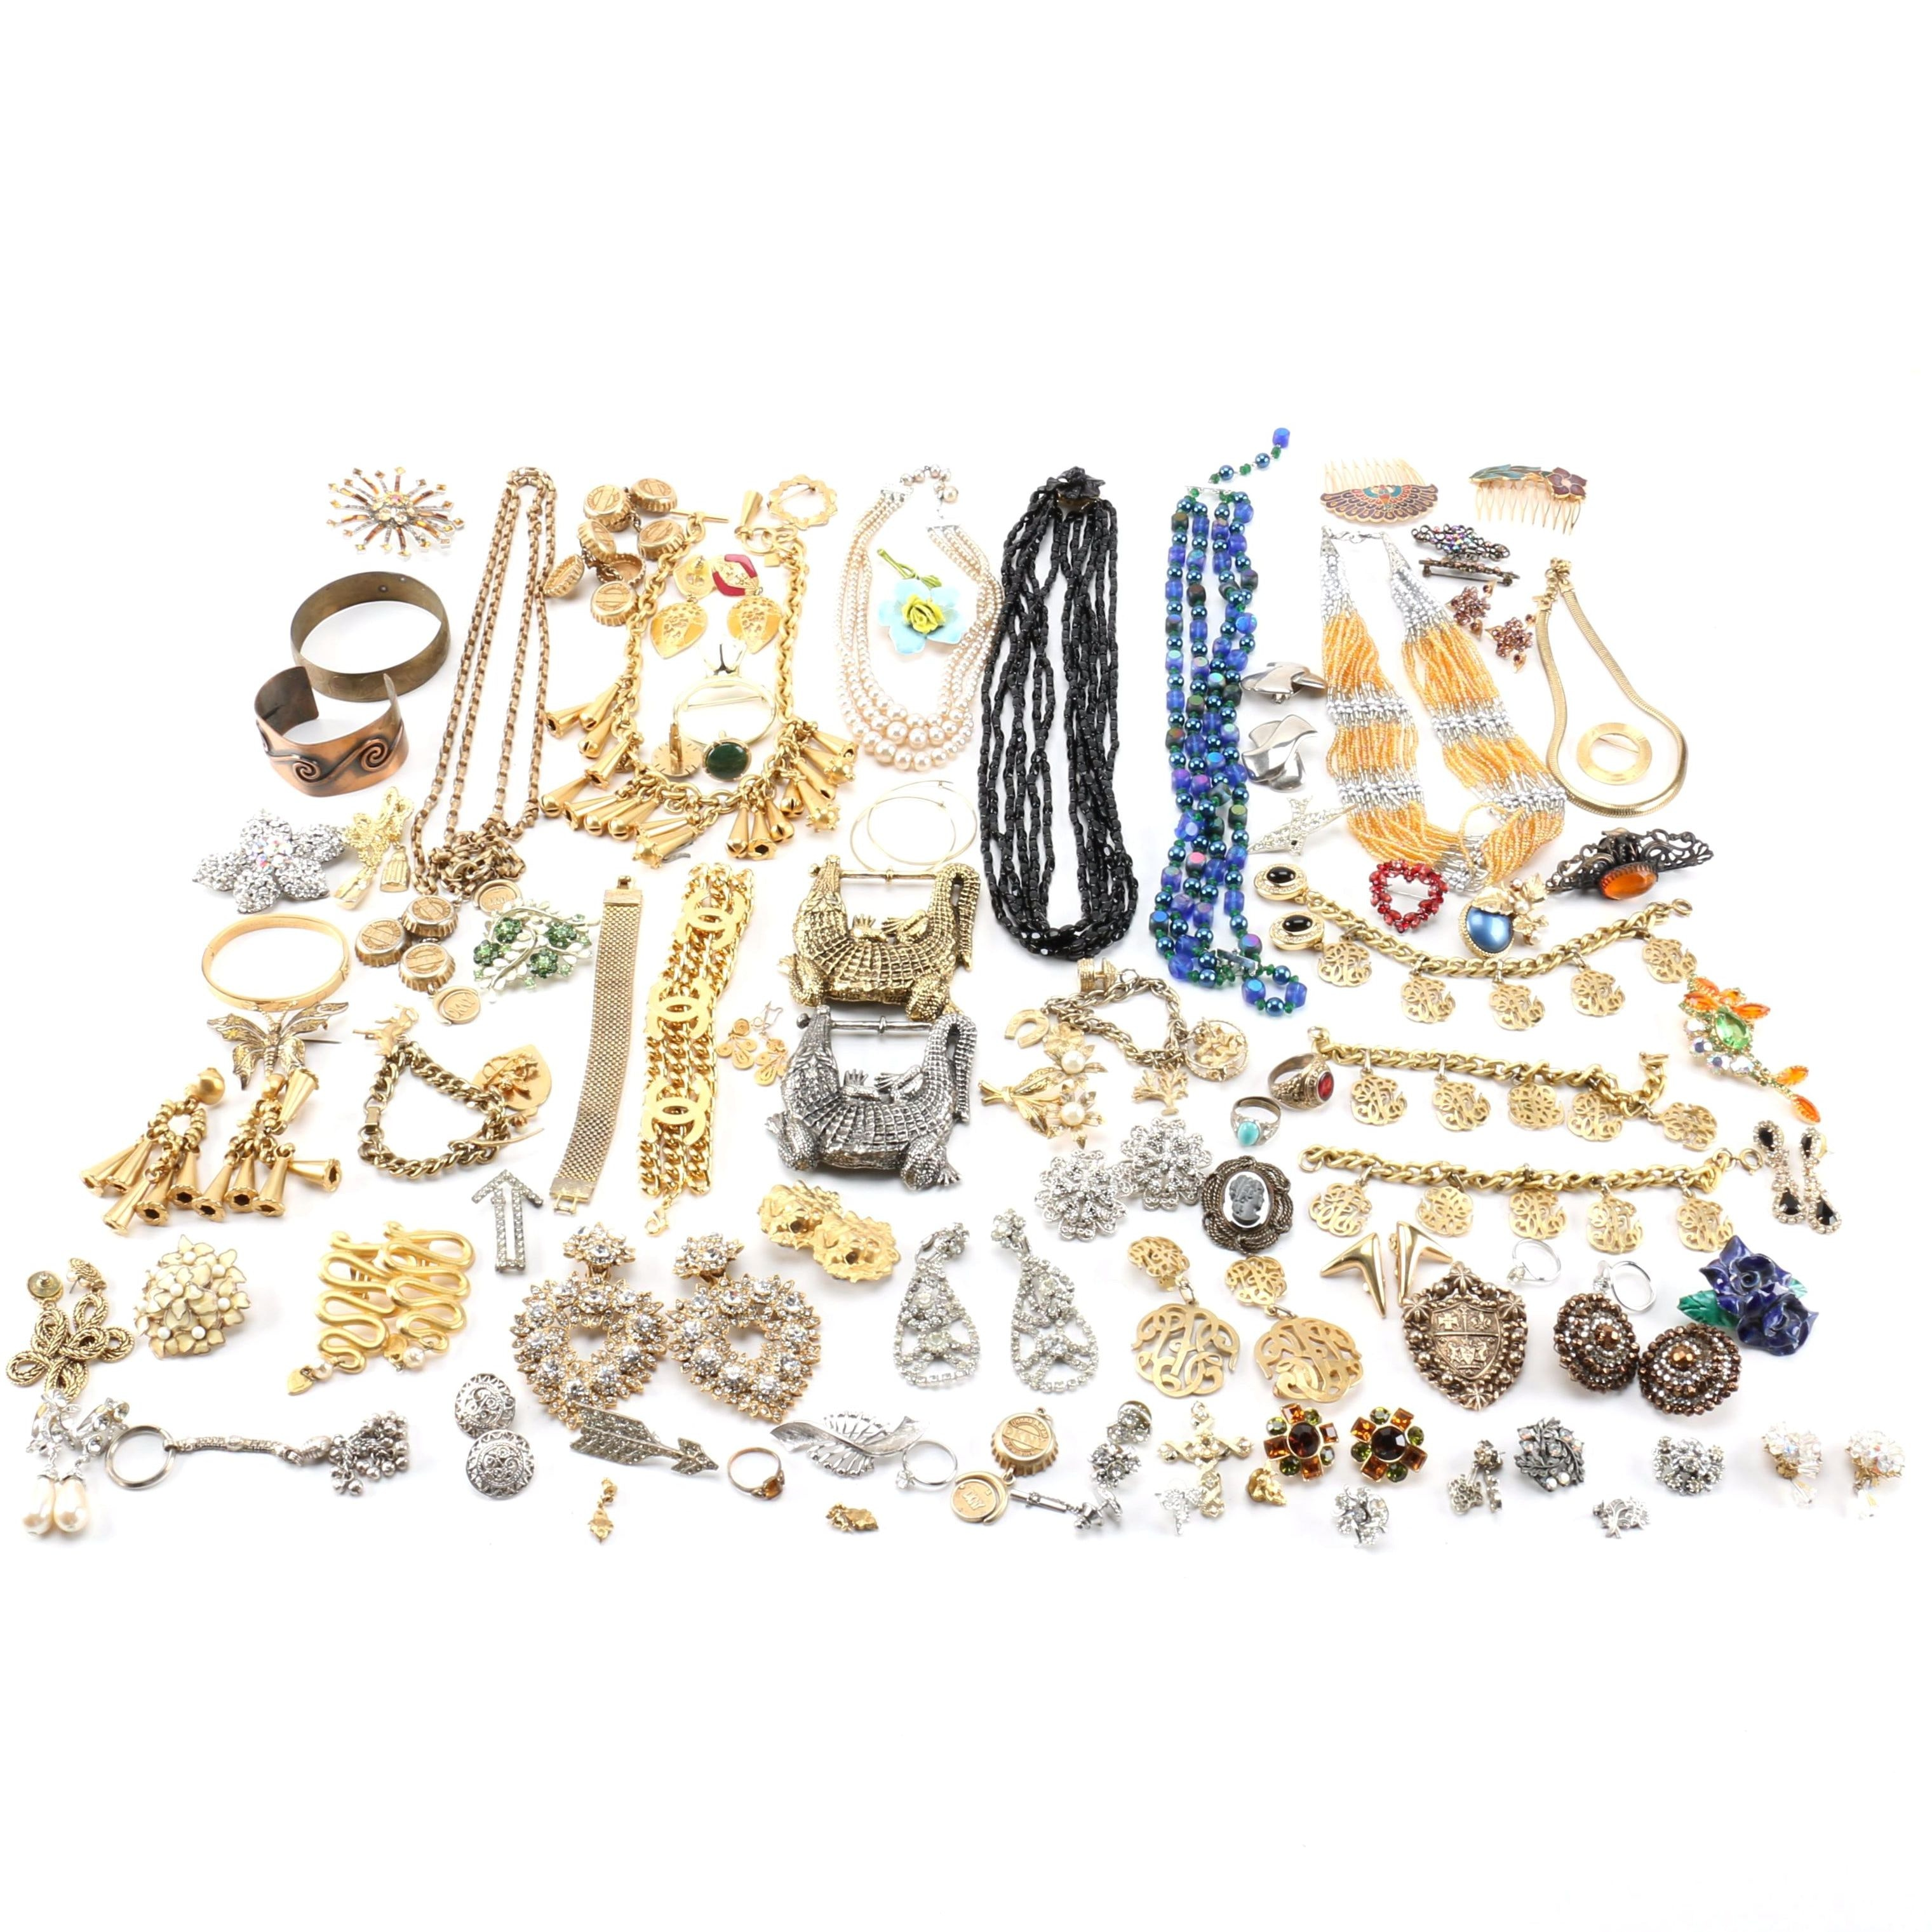 Generous Selection of Jewelry Including Vintage Pieces and Kramer